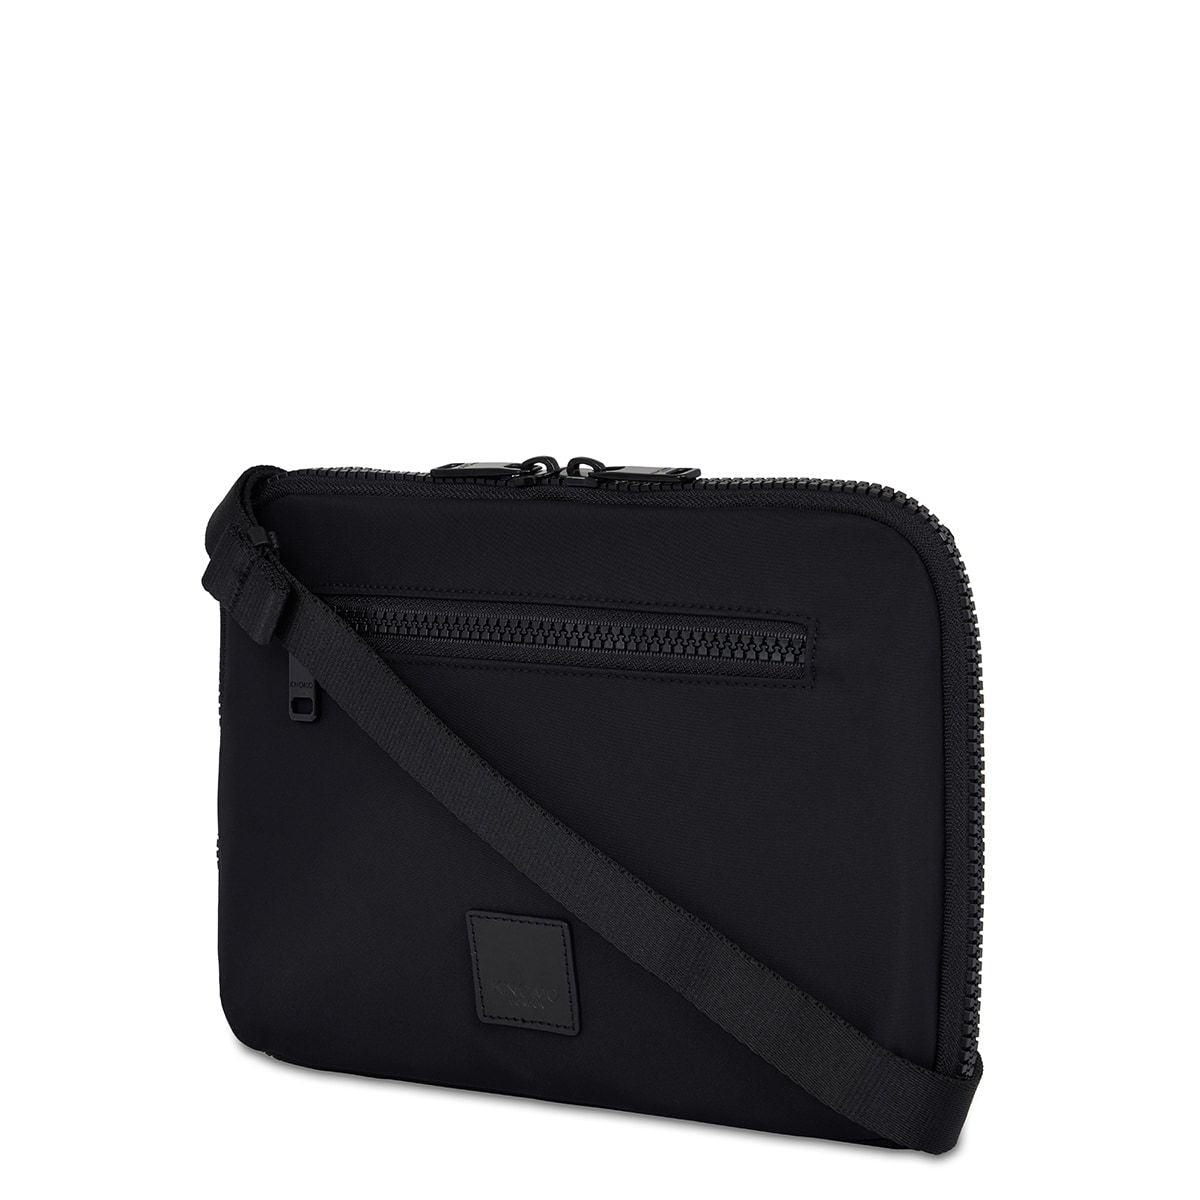 "KNOMO Fulham Knomad X-Body Organiser Tech Organiser Three Quarter View With Strap 10.5"" -  Black 